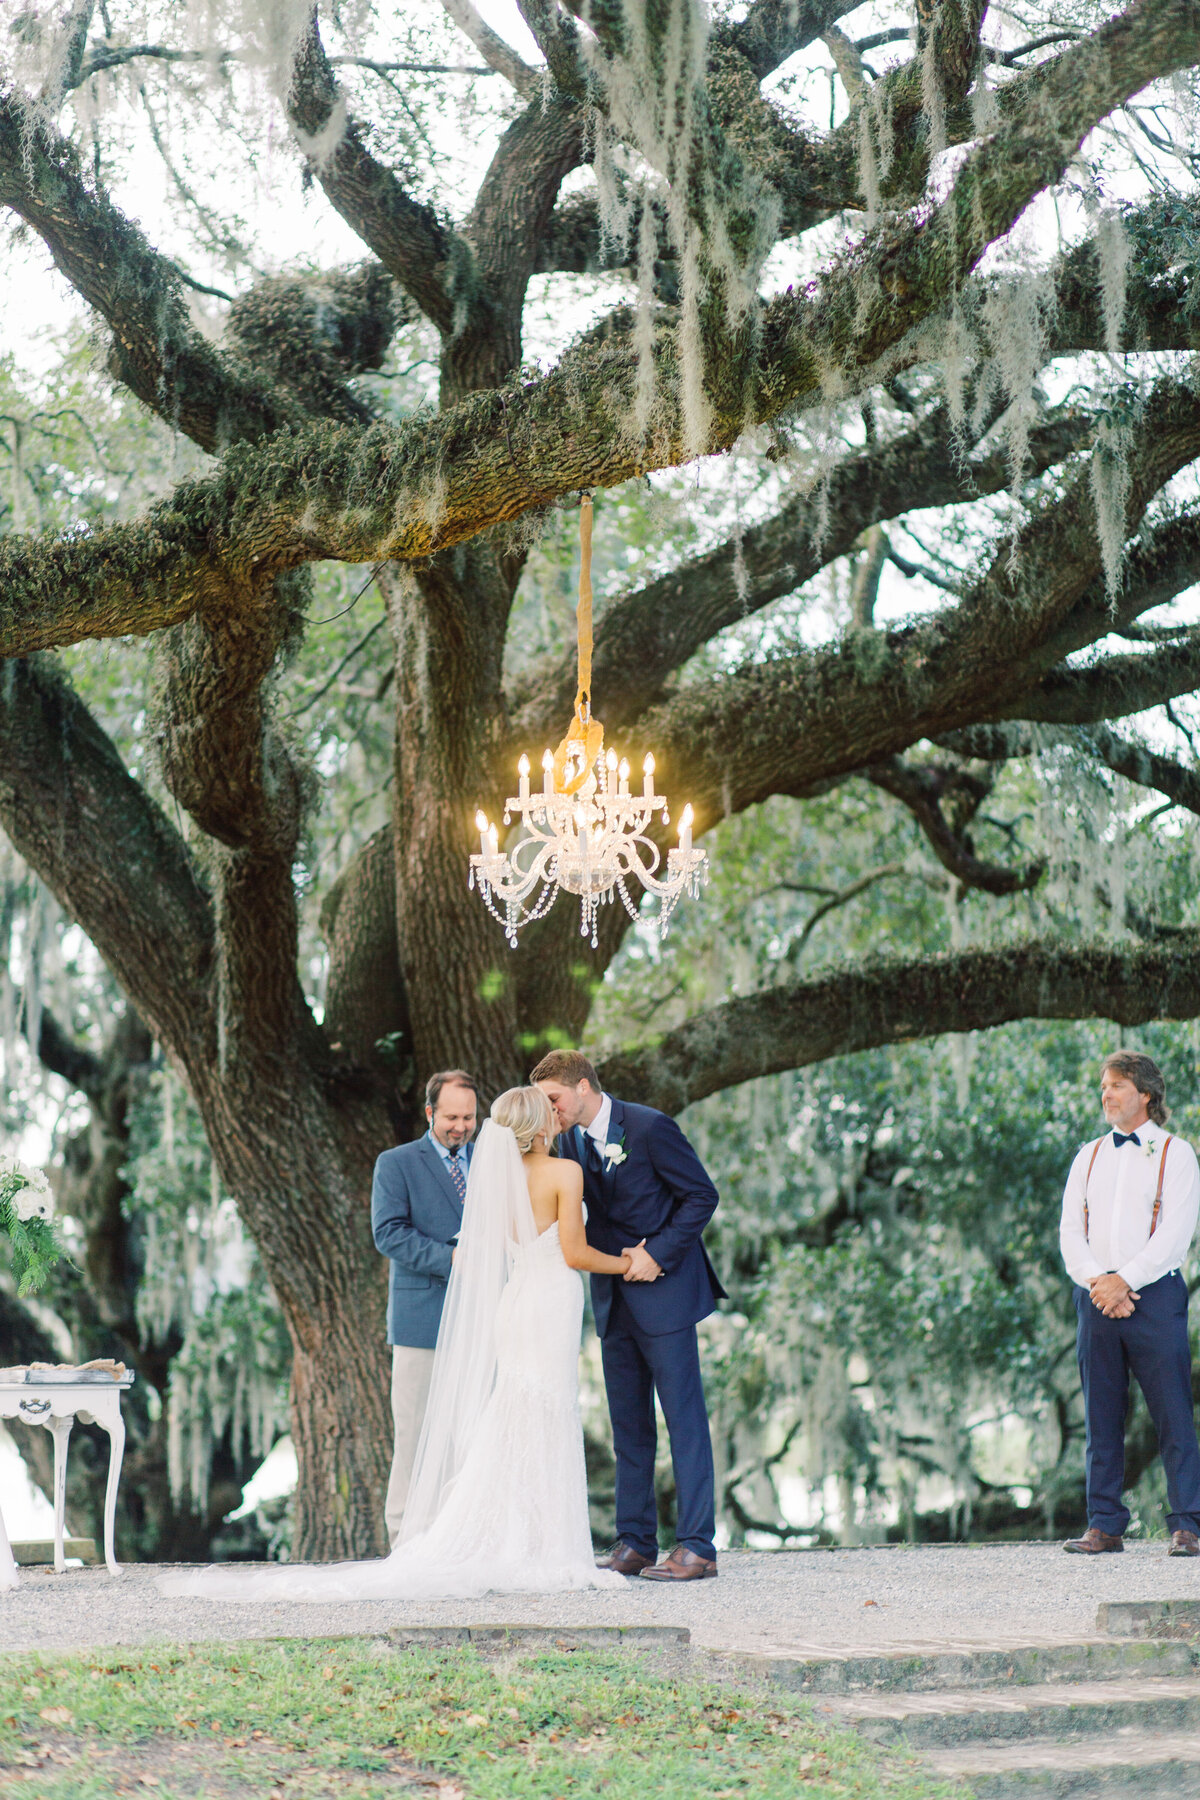 Melton_Wedding__Middleton_Place_Plantation_Charleston_South_Carolina_Jacksonville_Florida_Devon_Donnahoo_Photography__0670